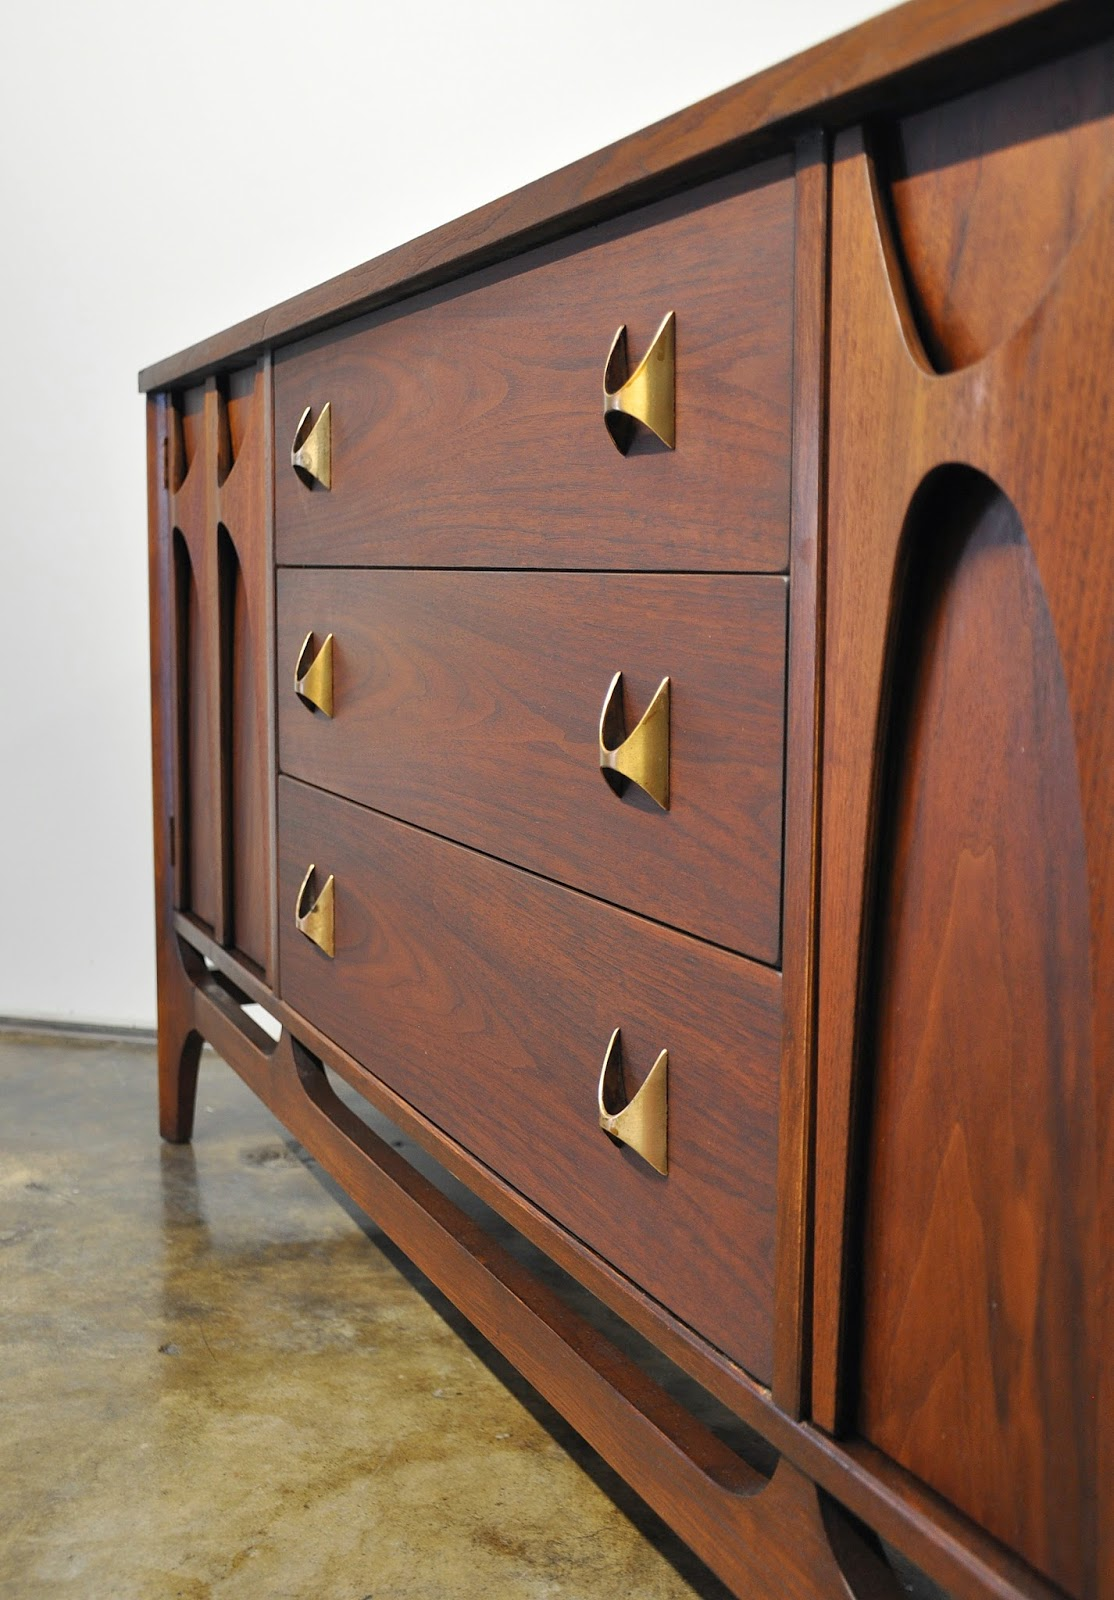 Buffet Cabinet With Drawers Select Modern: Broyhill Brasilia Credenza, Buffet, Sideboard, Bar Or Media Console